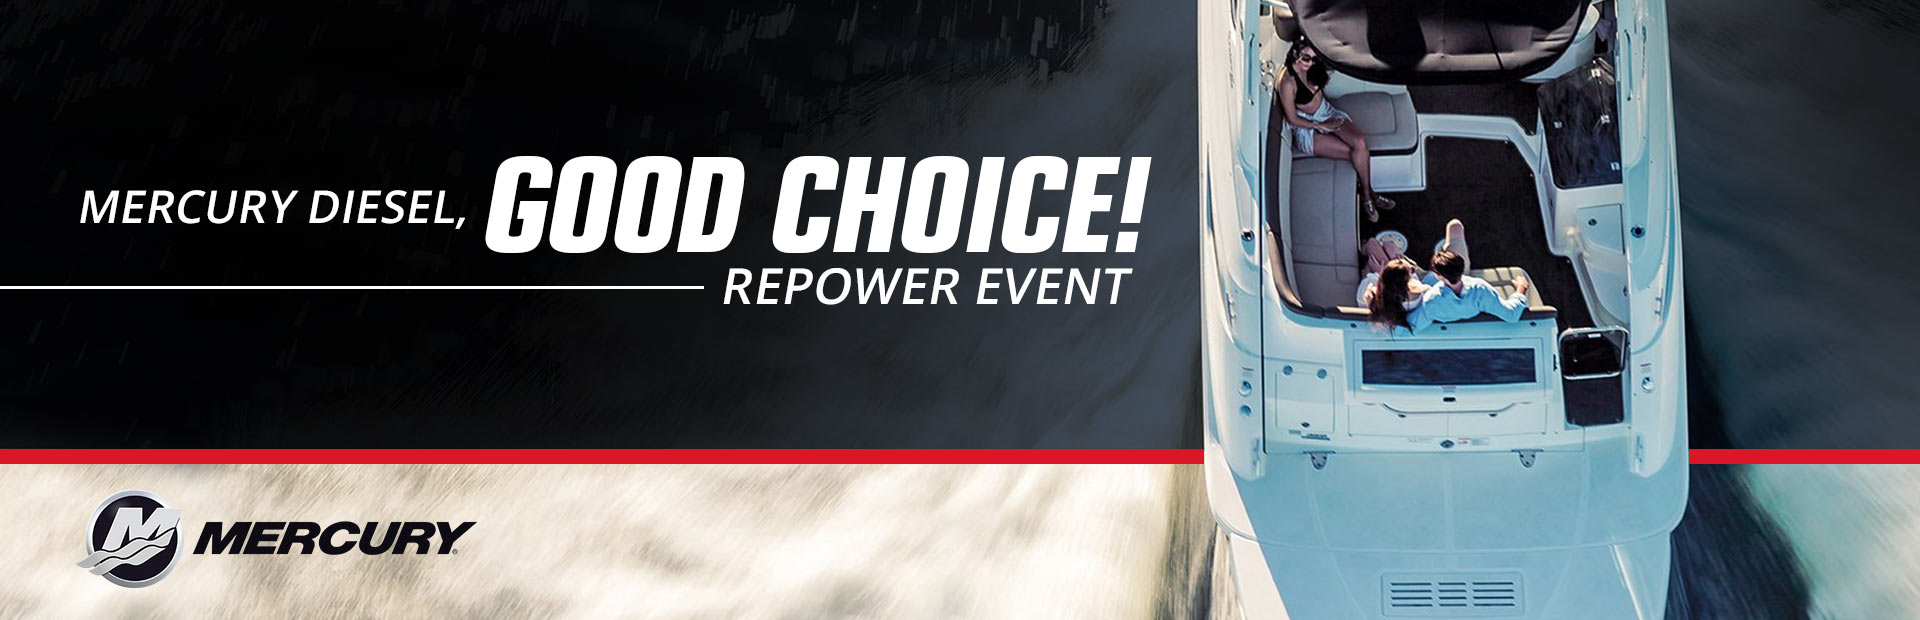 Mercury: Mercury Diesel, Good Choice! Repower Event